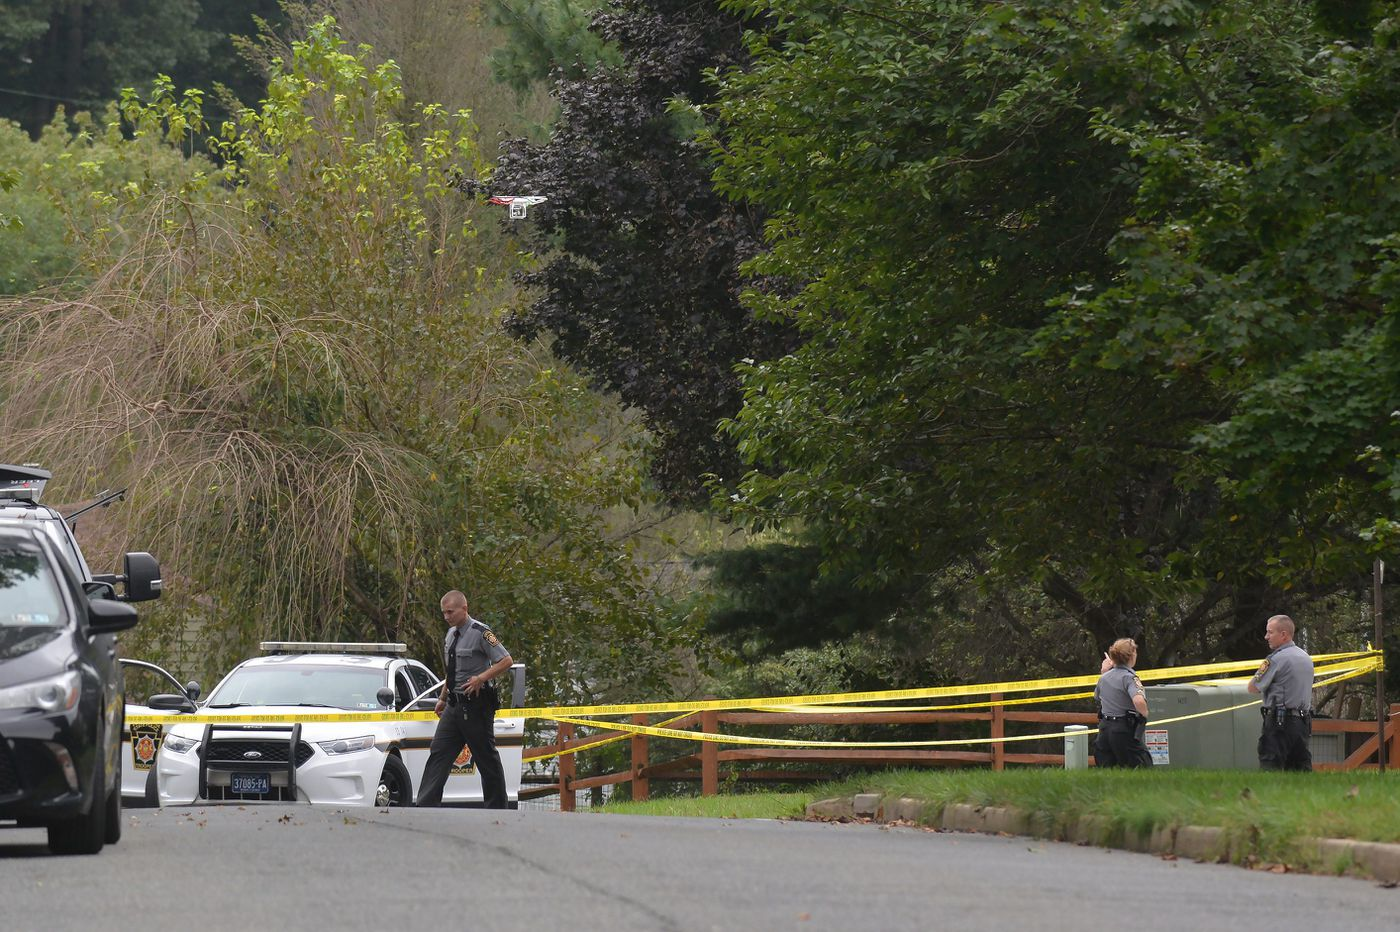 Chester County shooter, ex-wife tangled in bitter, 3-year divorce that ended day before violent encounter